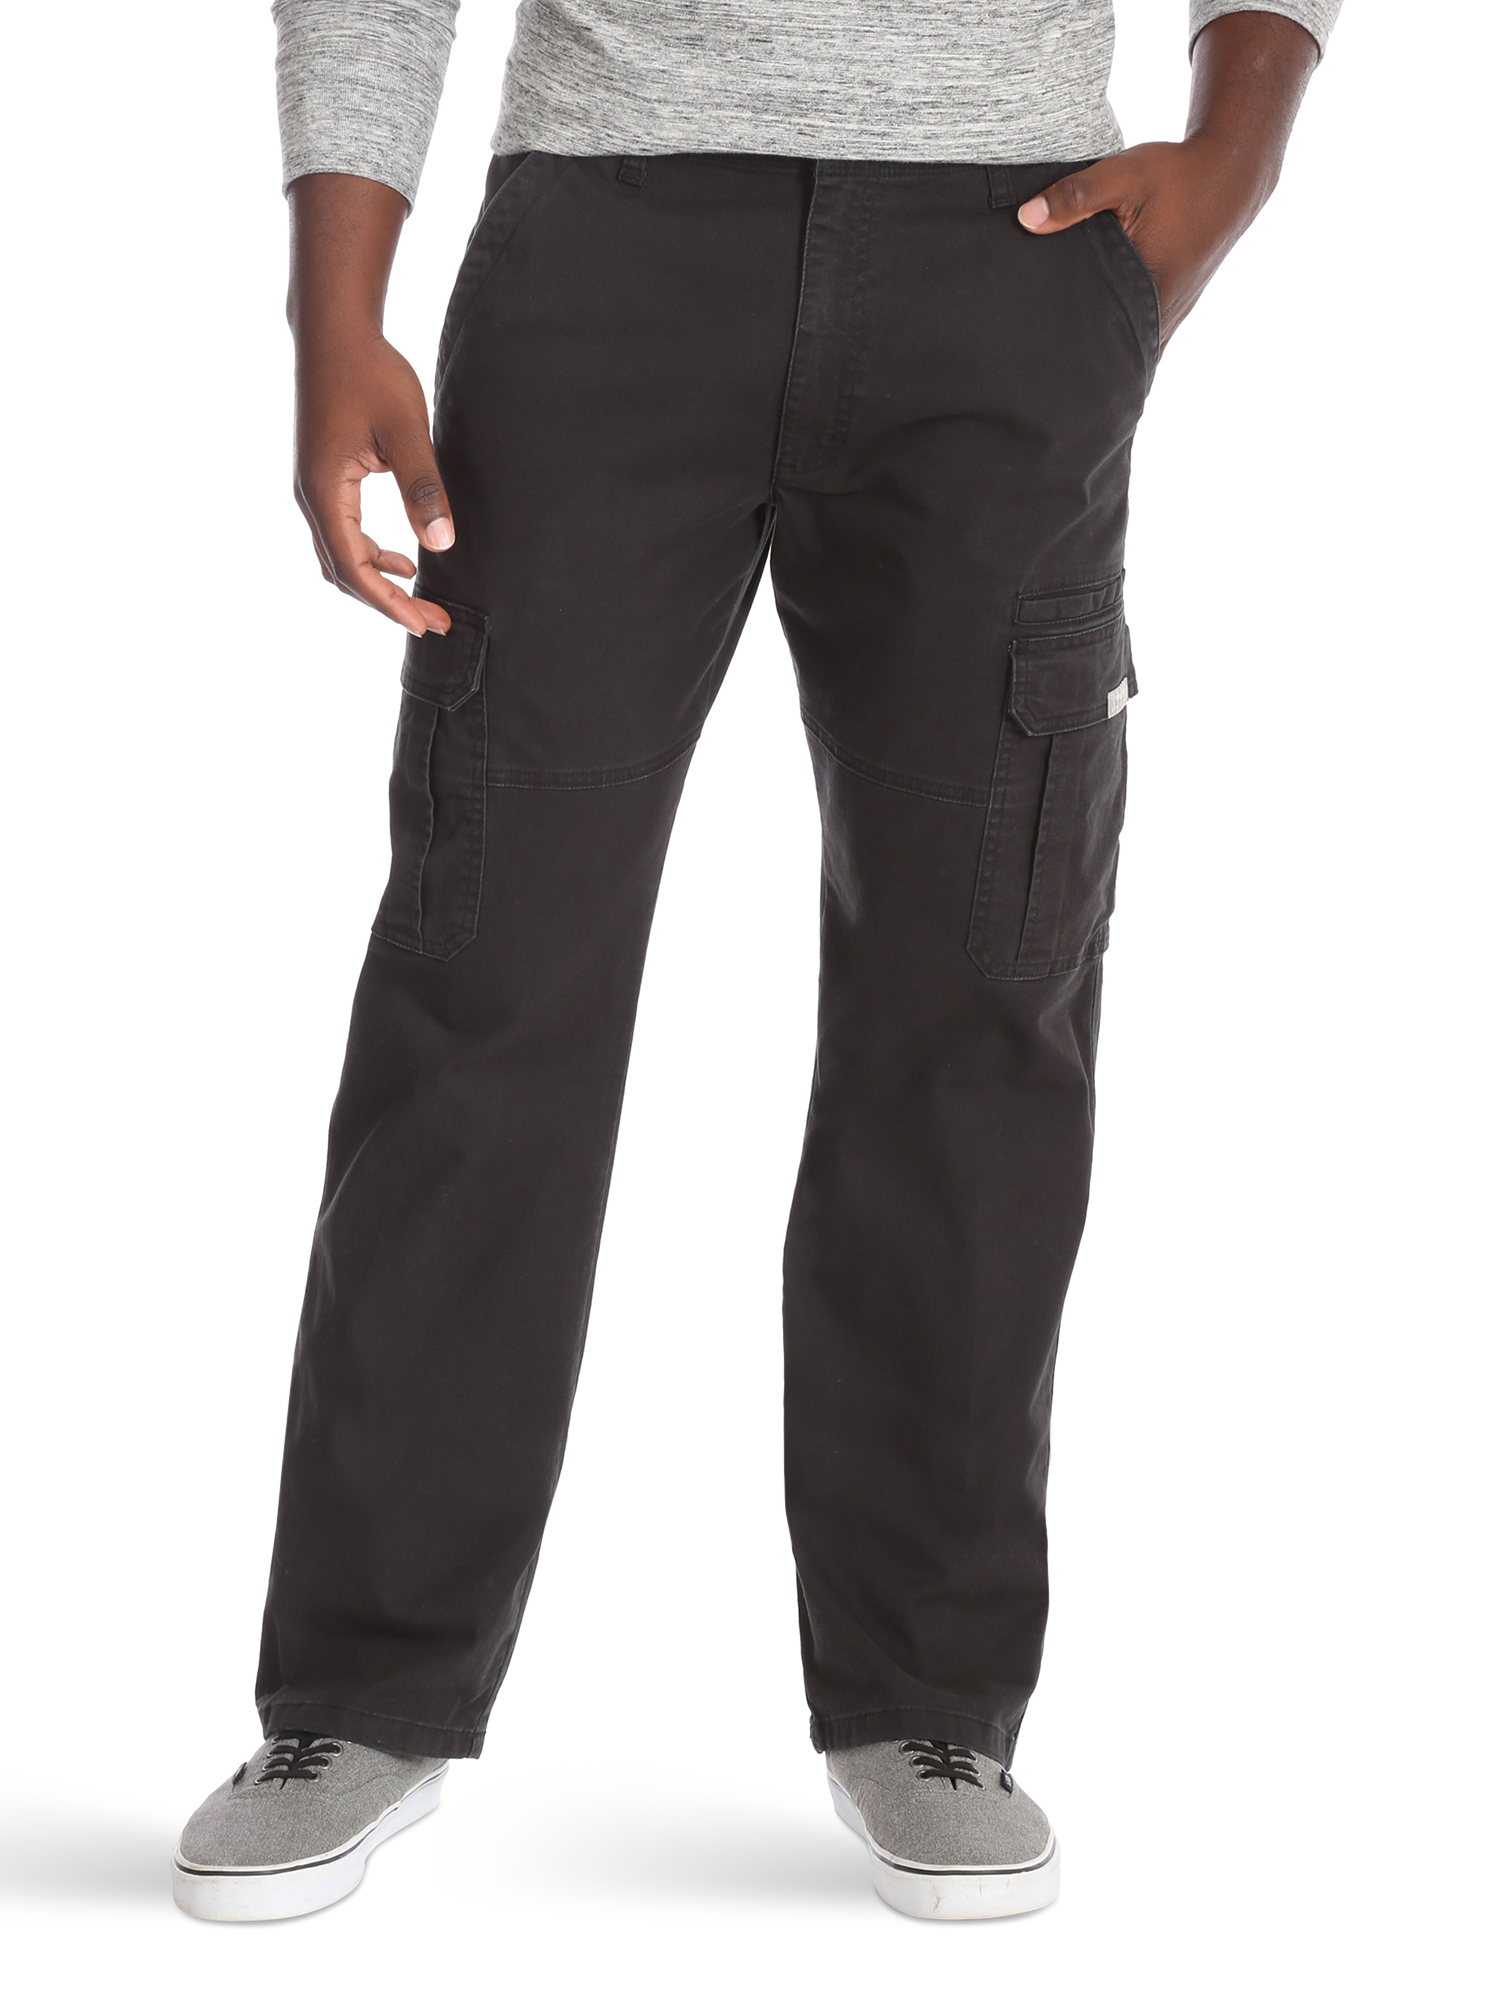 Men's Relaxed Fit Cargo Pant with Stretch